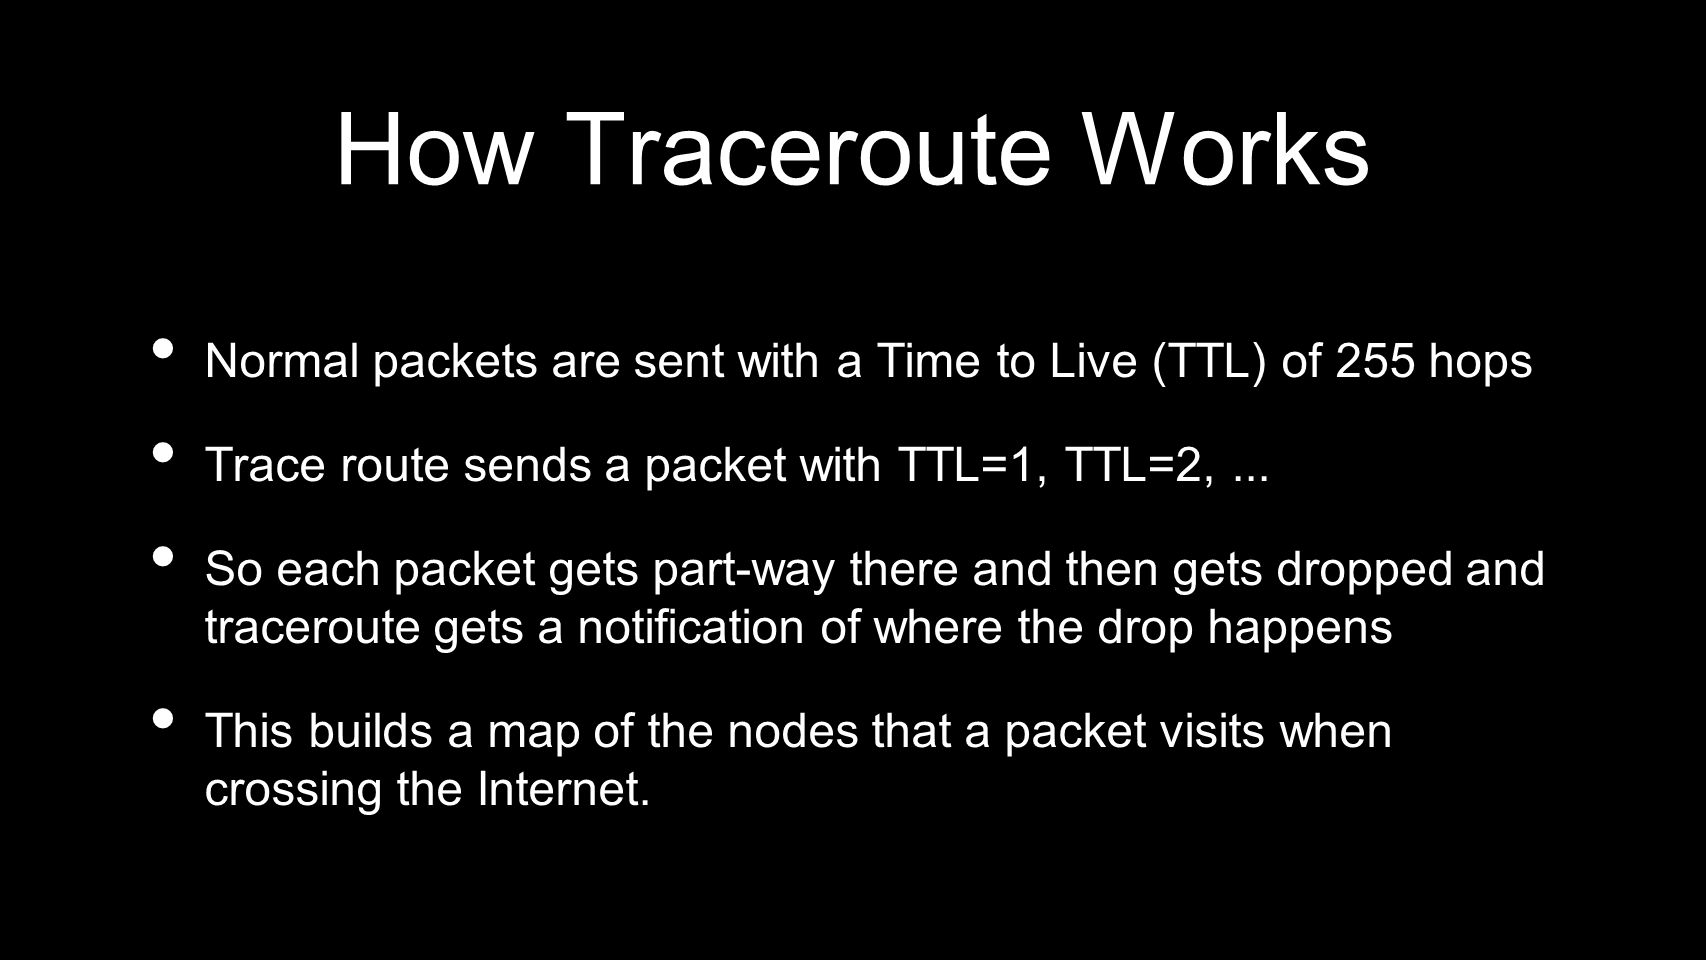 How Traceroute Works Normal packets are sent with a Time to Live (TTL) of 255 hops. Trace route sends a packet with TTL=1, TTL=2, ...